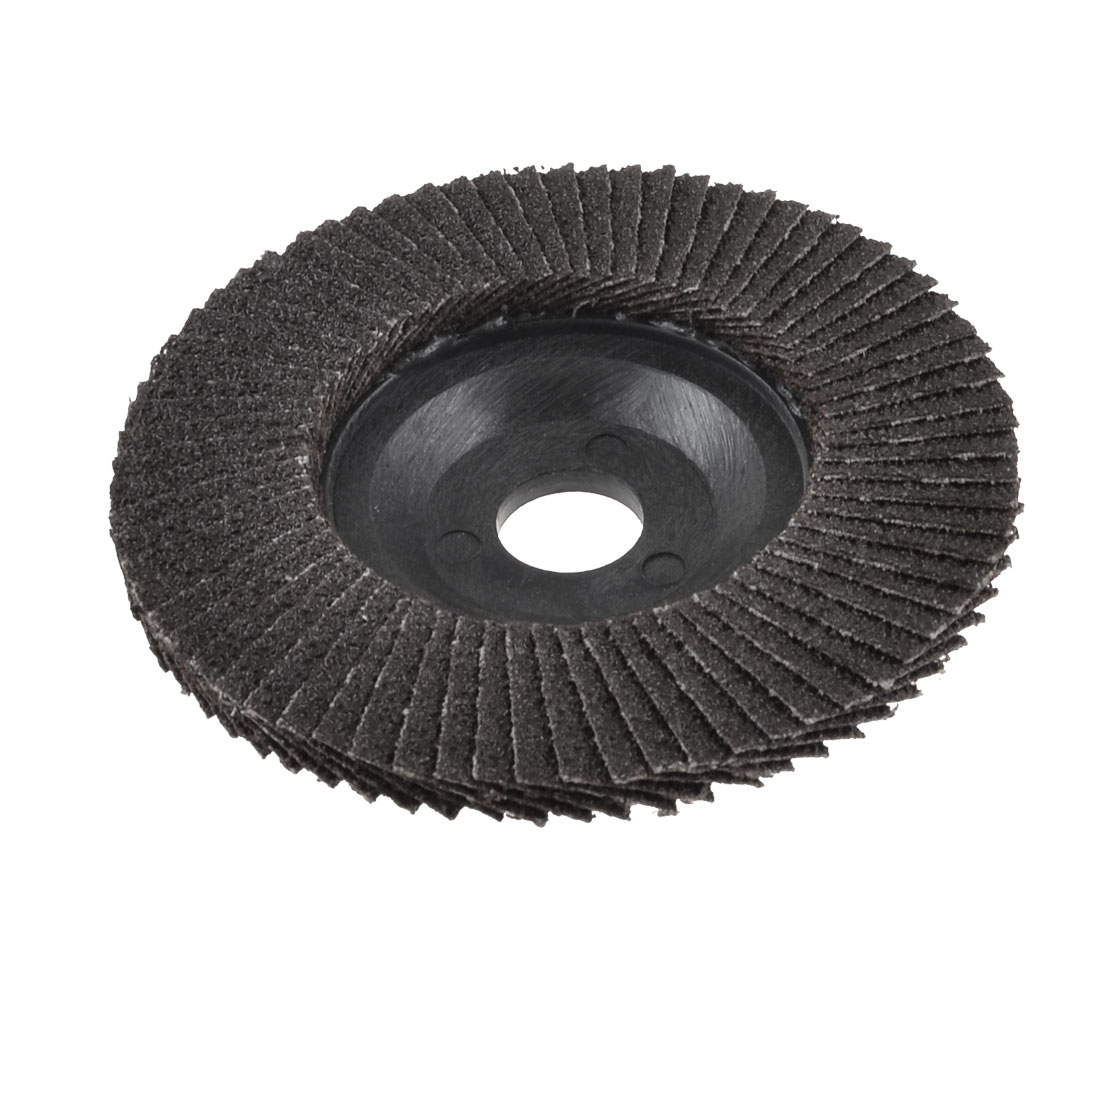 Metal Polishing 80# 100mm Dia Flap Sanding Abrasive Wheels Discs Disc